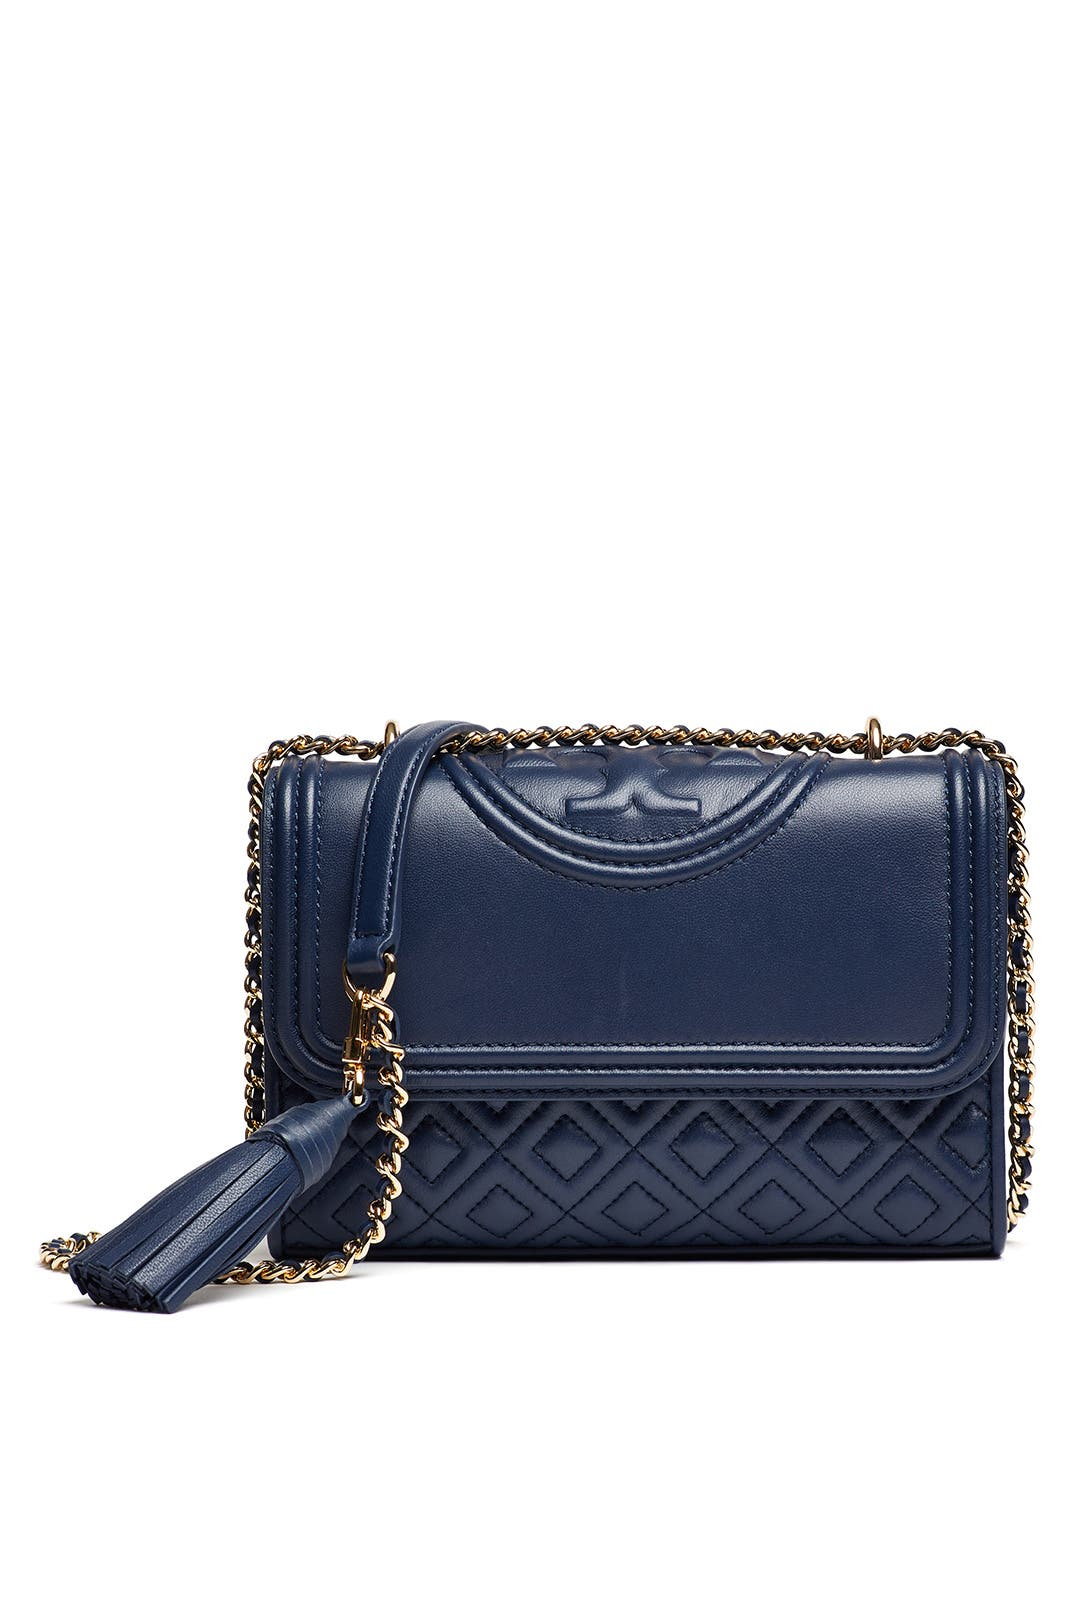 b2f9e15e99aad Navy Fleming Small Convertible Bag by Tory Burch Accessories for  70 ...